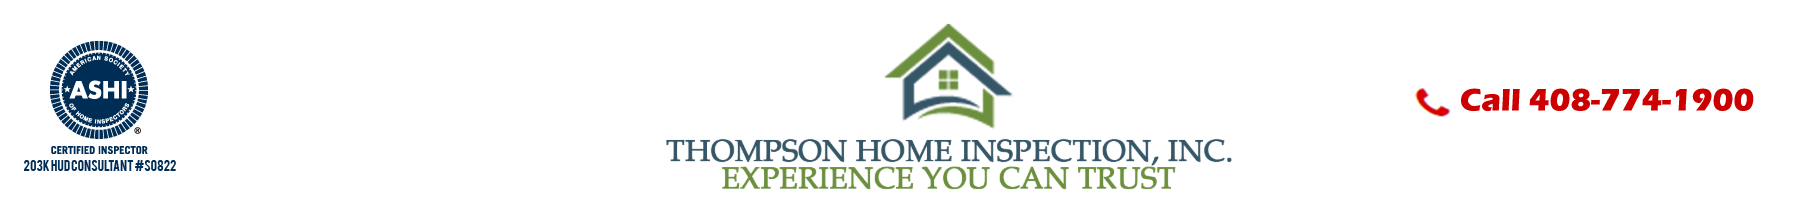 Thompson Home Inspection